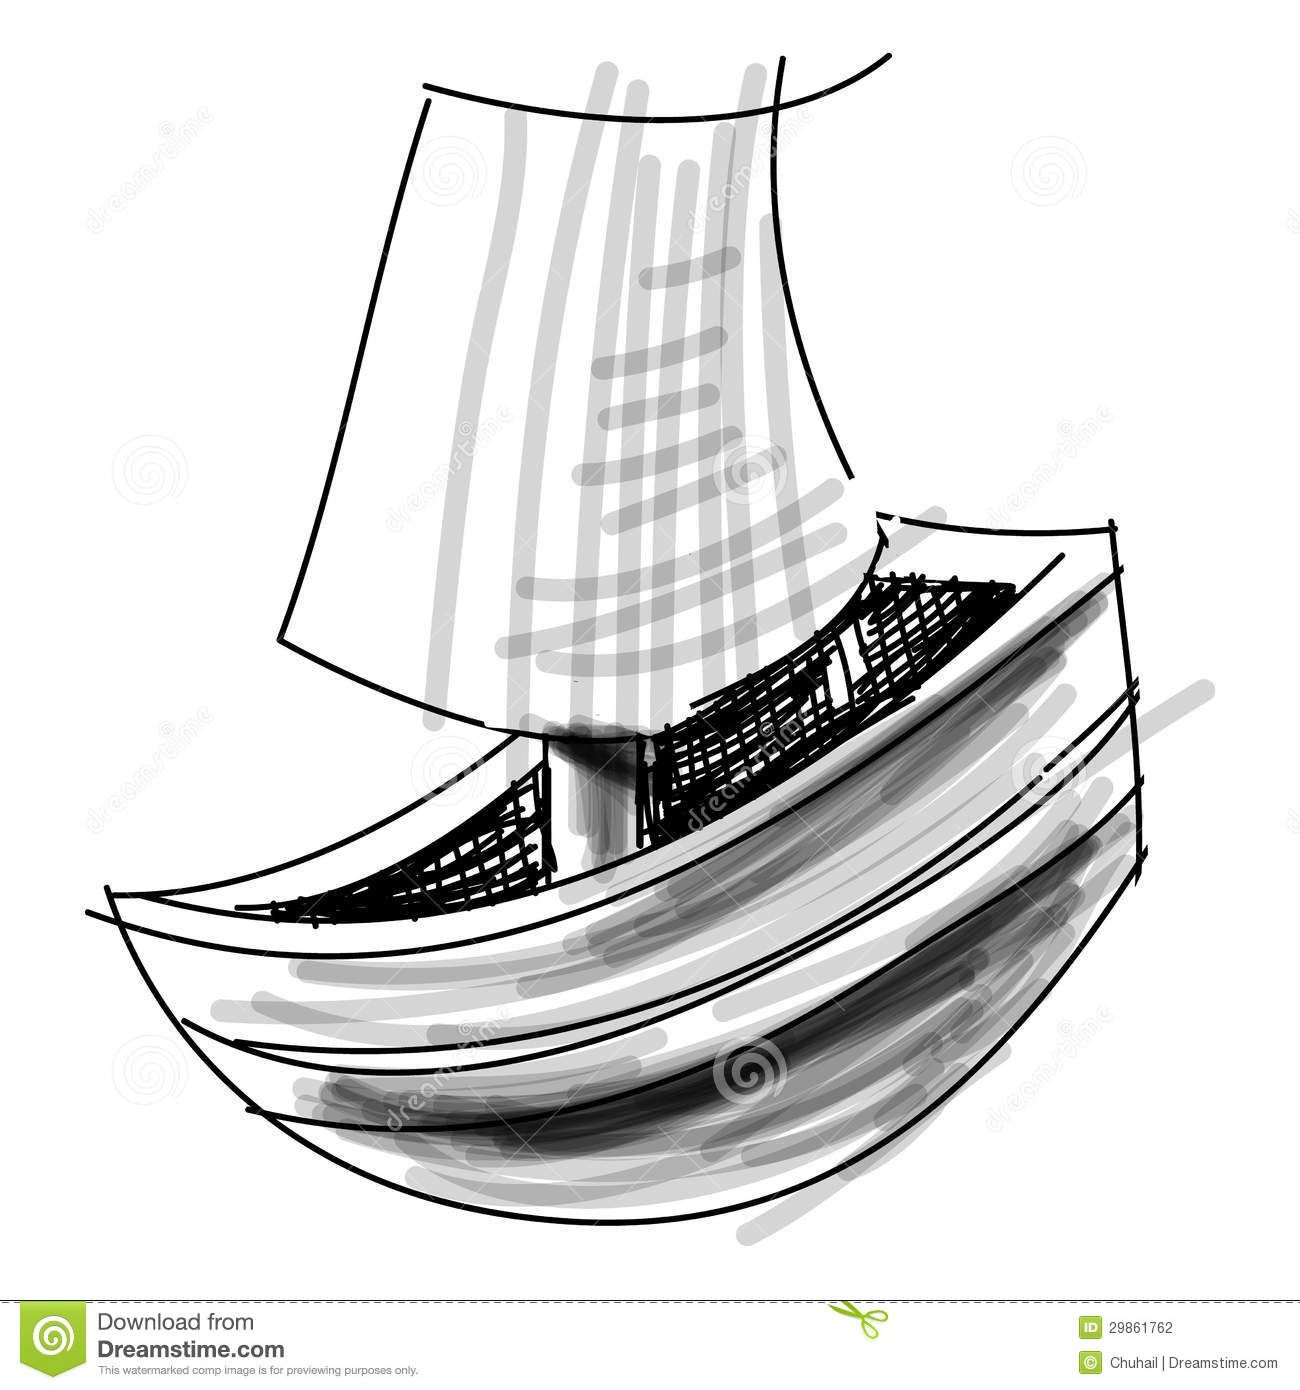 Boat With Sail Sketch Vector Illustration Stock Vector